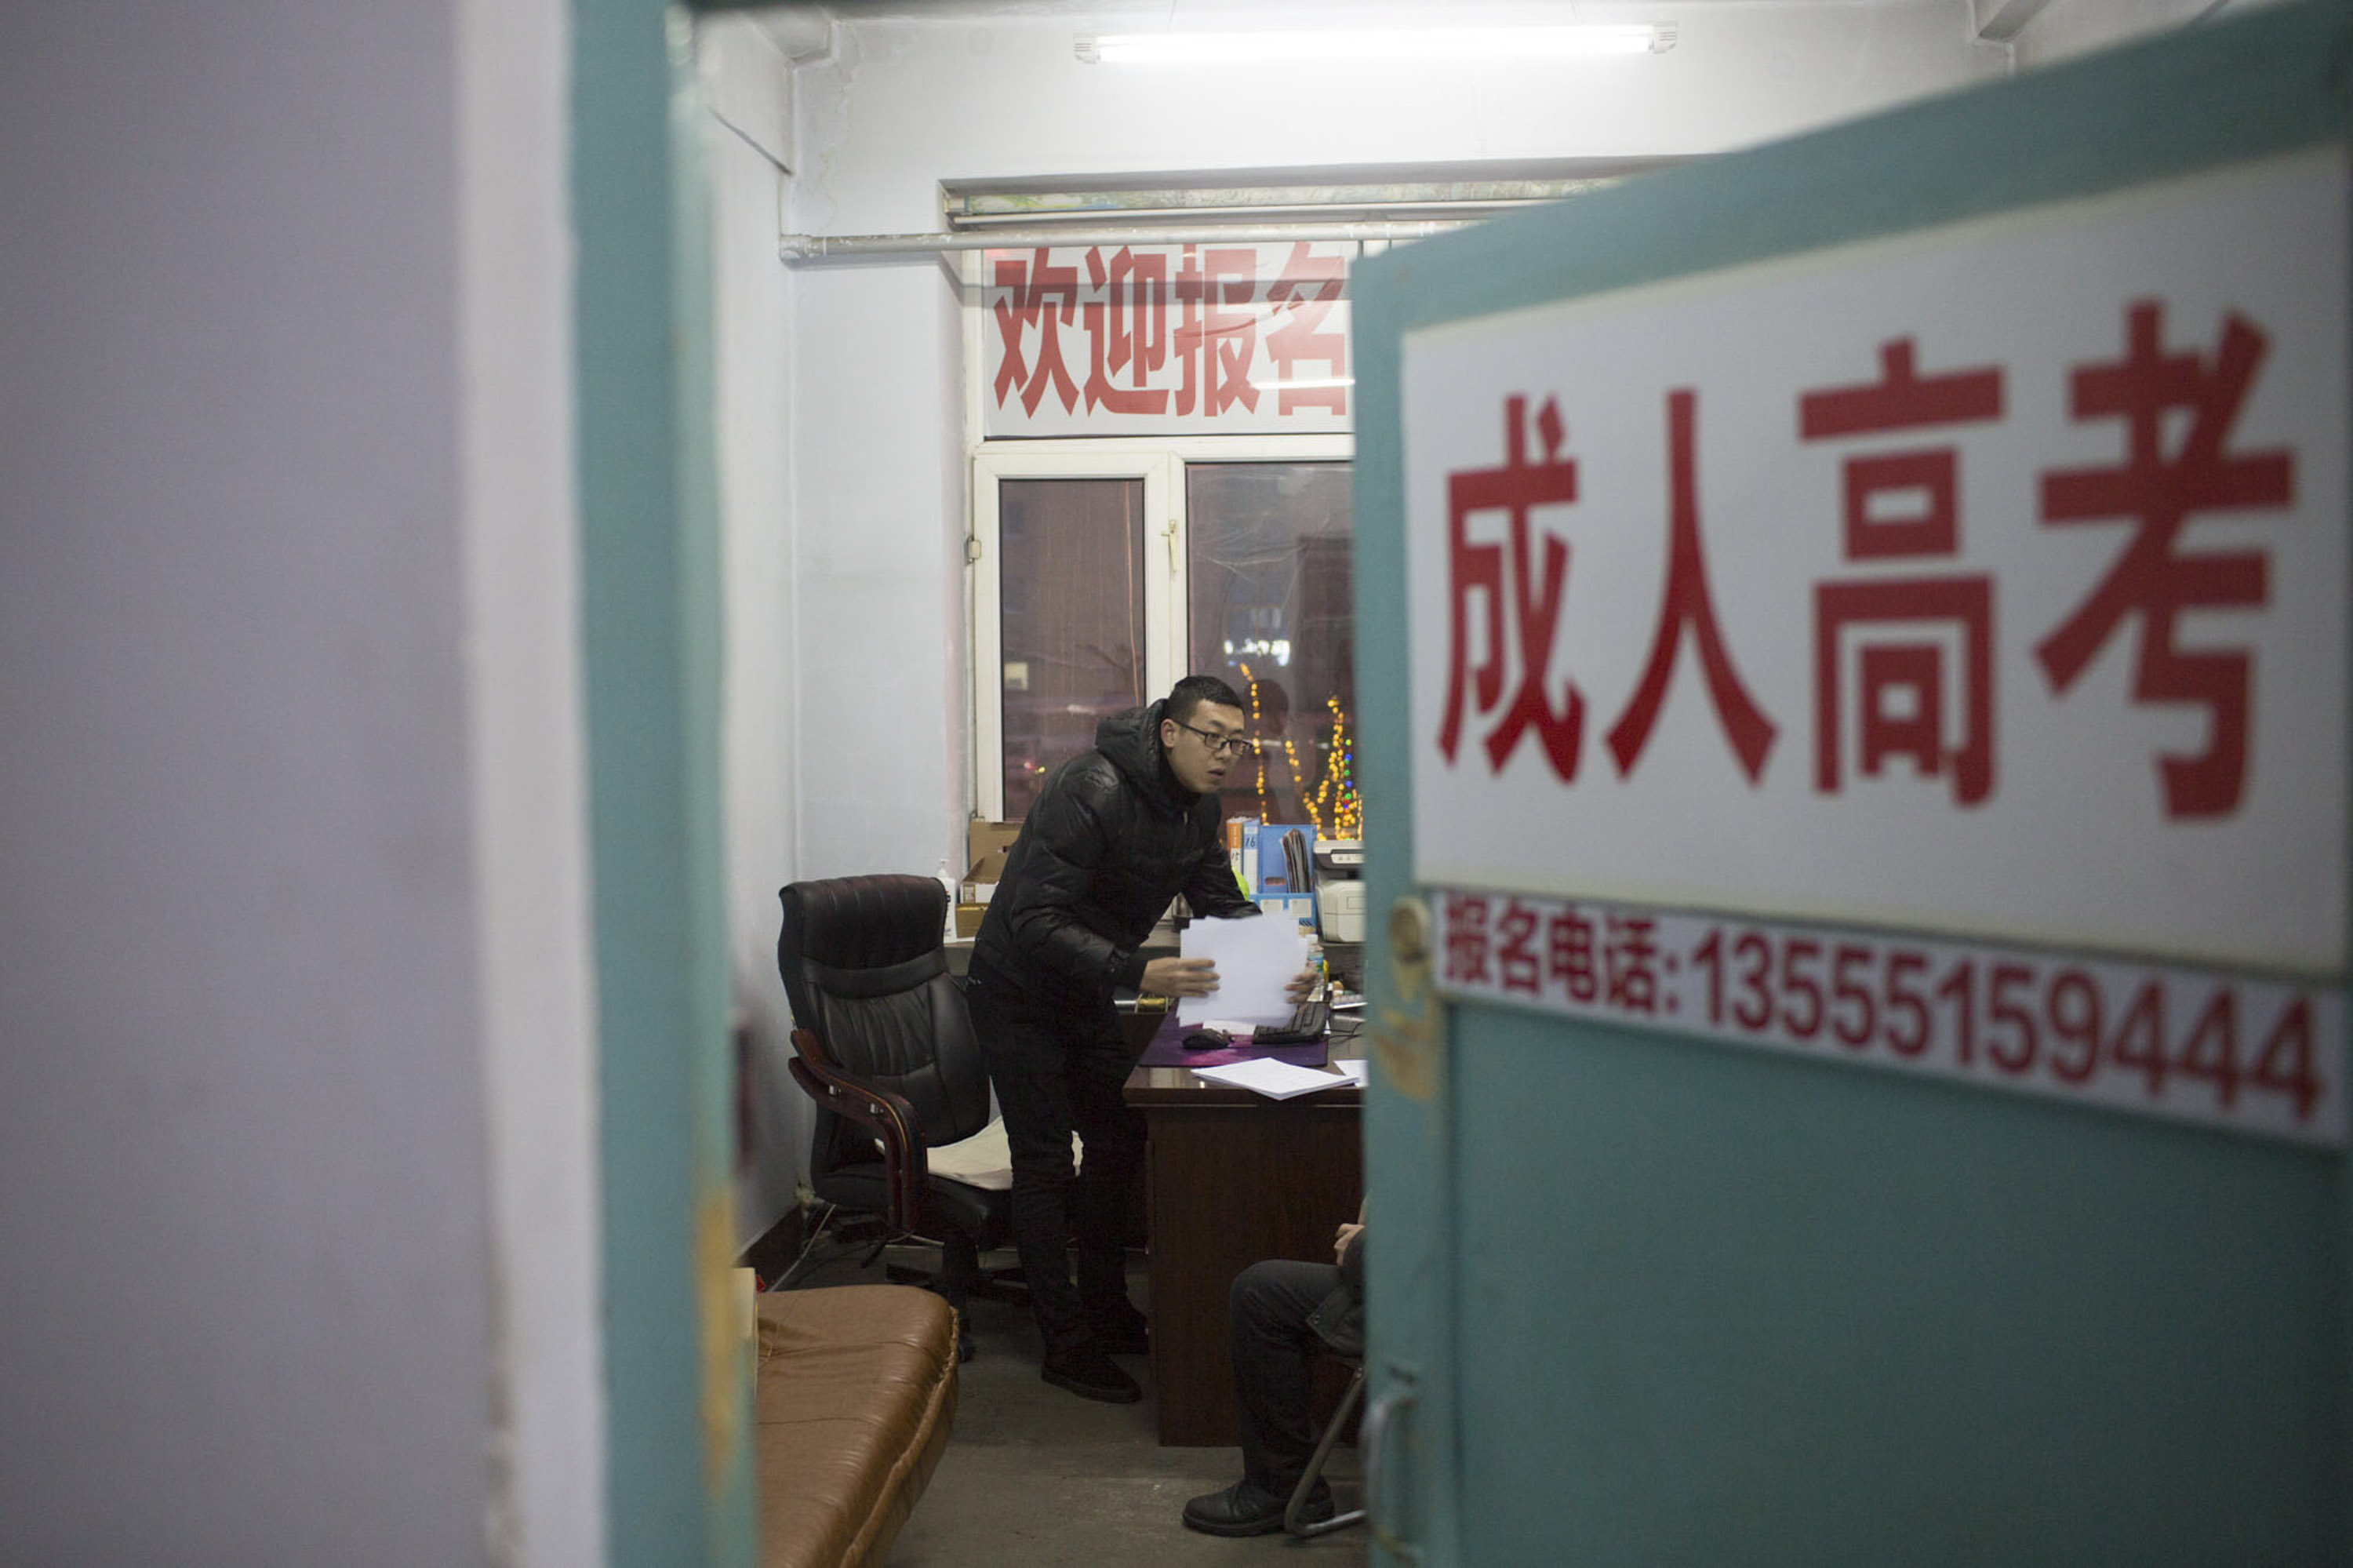 Yang Kun is visited by a client at his adult education recruitment practice in Shuangyashan, Jan. 20, 2016. Yang started the firm following a demotion at the mine where he worked previously. Zhou Pinglang/Sixth Tone